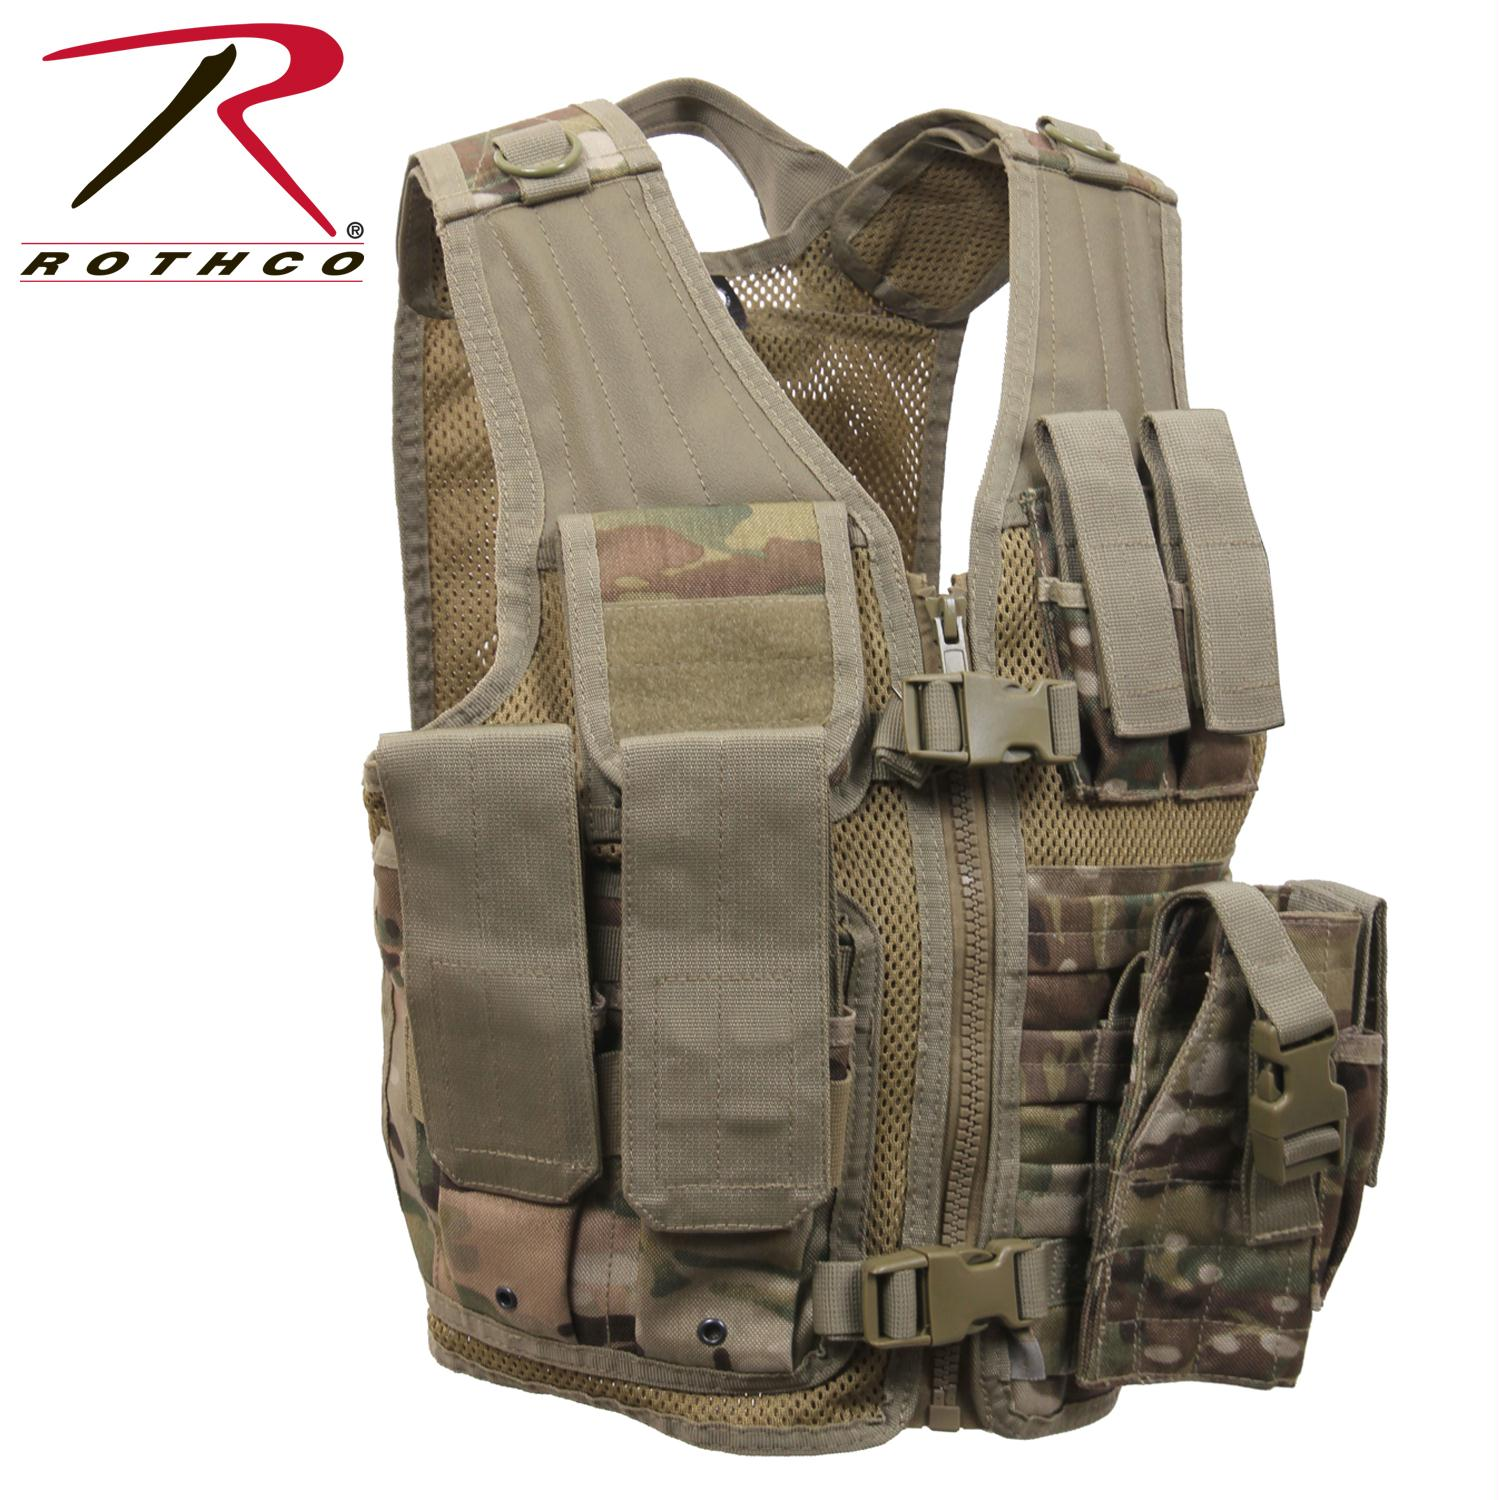 Rothco Kid's Tactical Cross Draw Vest - MultiCam